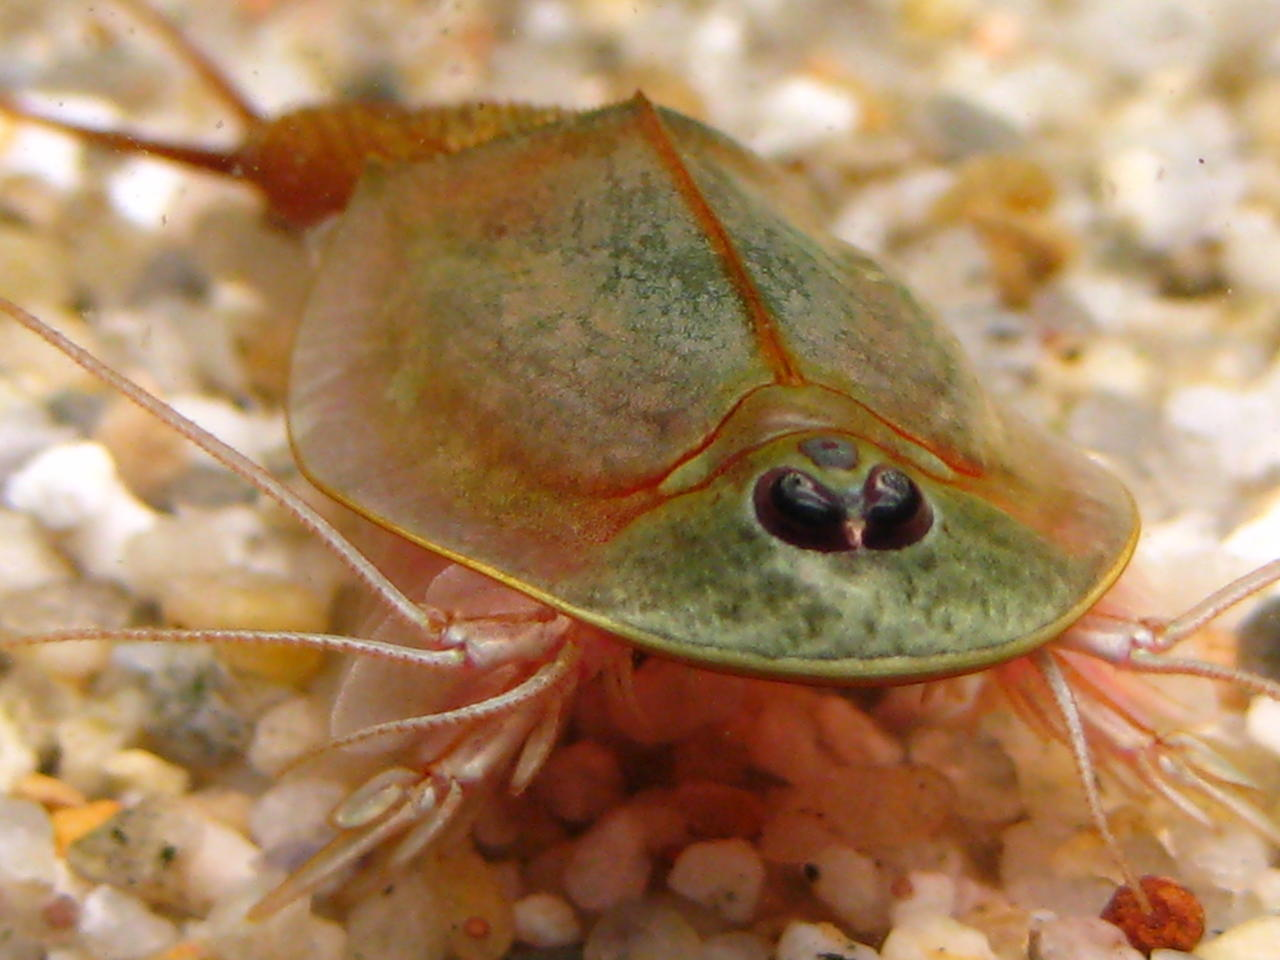 This Triops Is In A Way Cleaner Bowl Than Ours